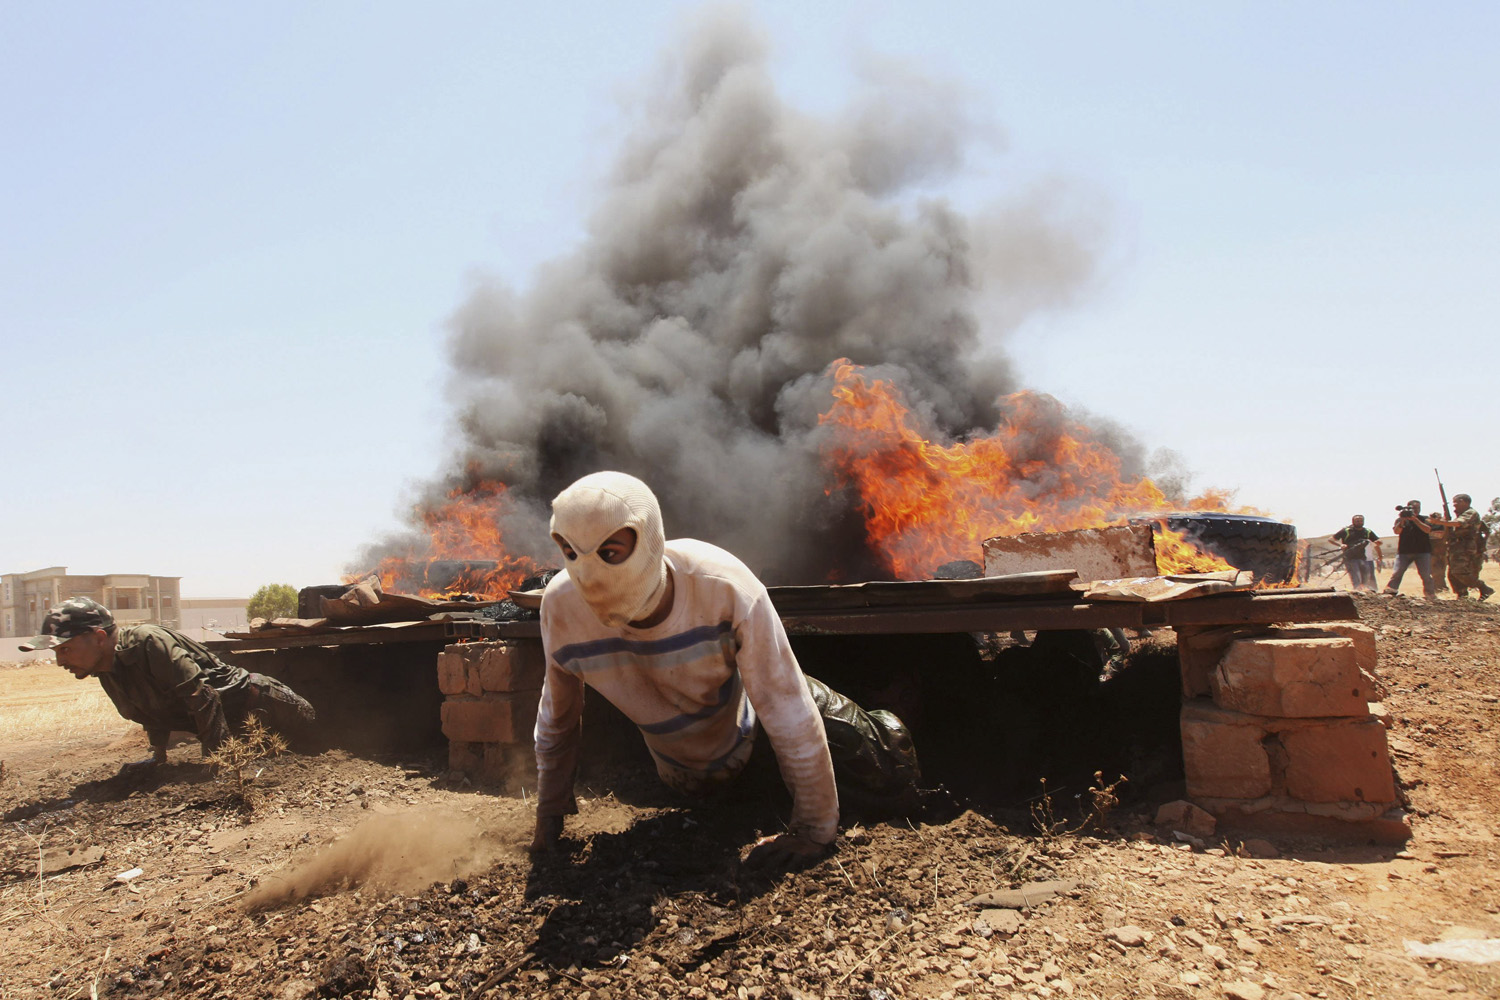 May 15, 2011. Civilian volunteers of the rebel army clear an obstacle course during training in Benghazi, Libya.